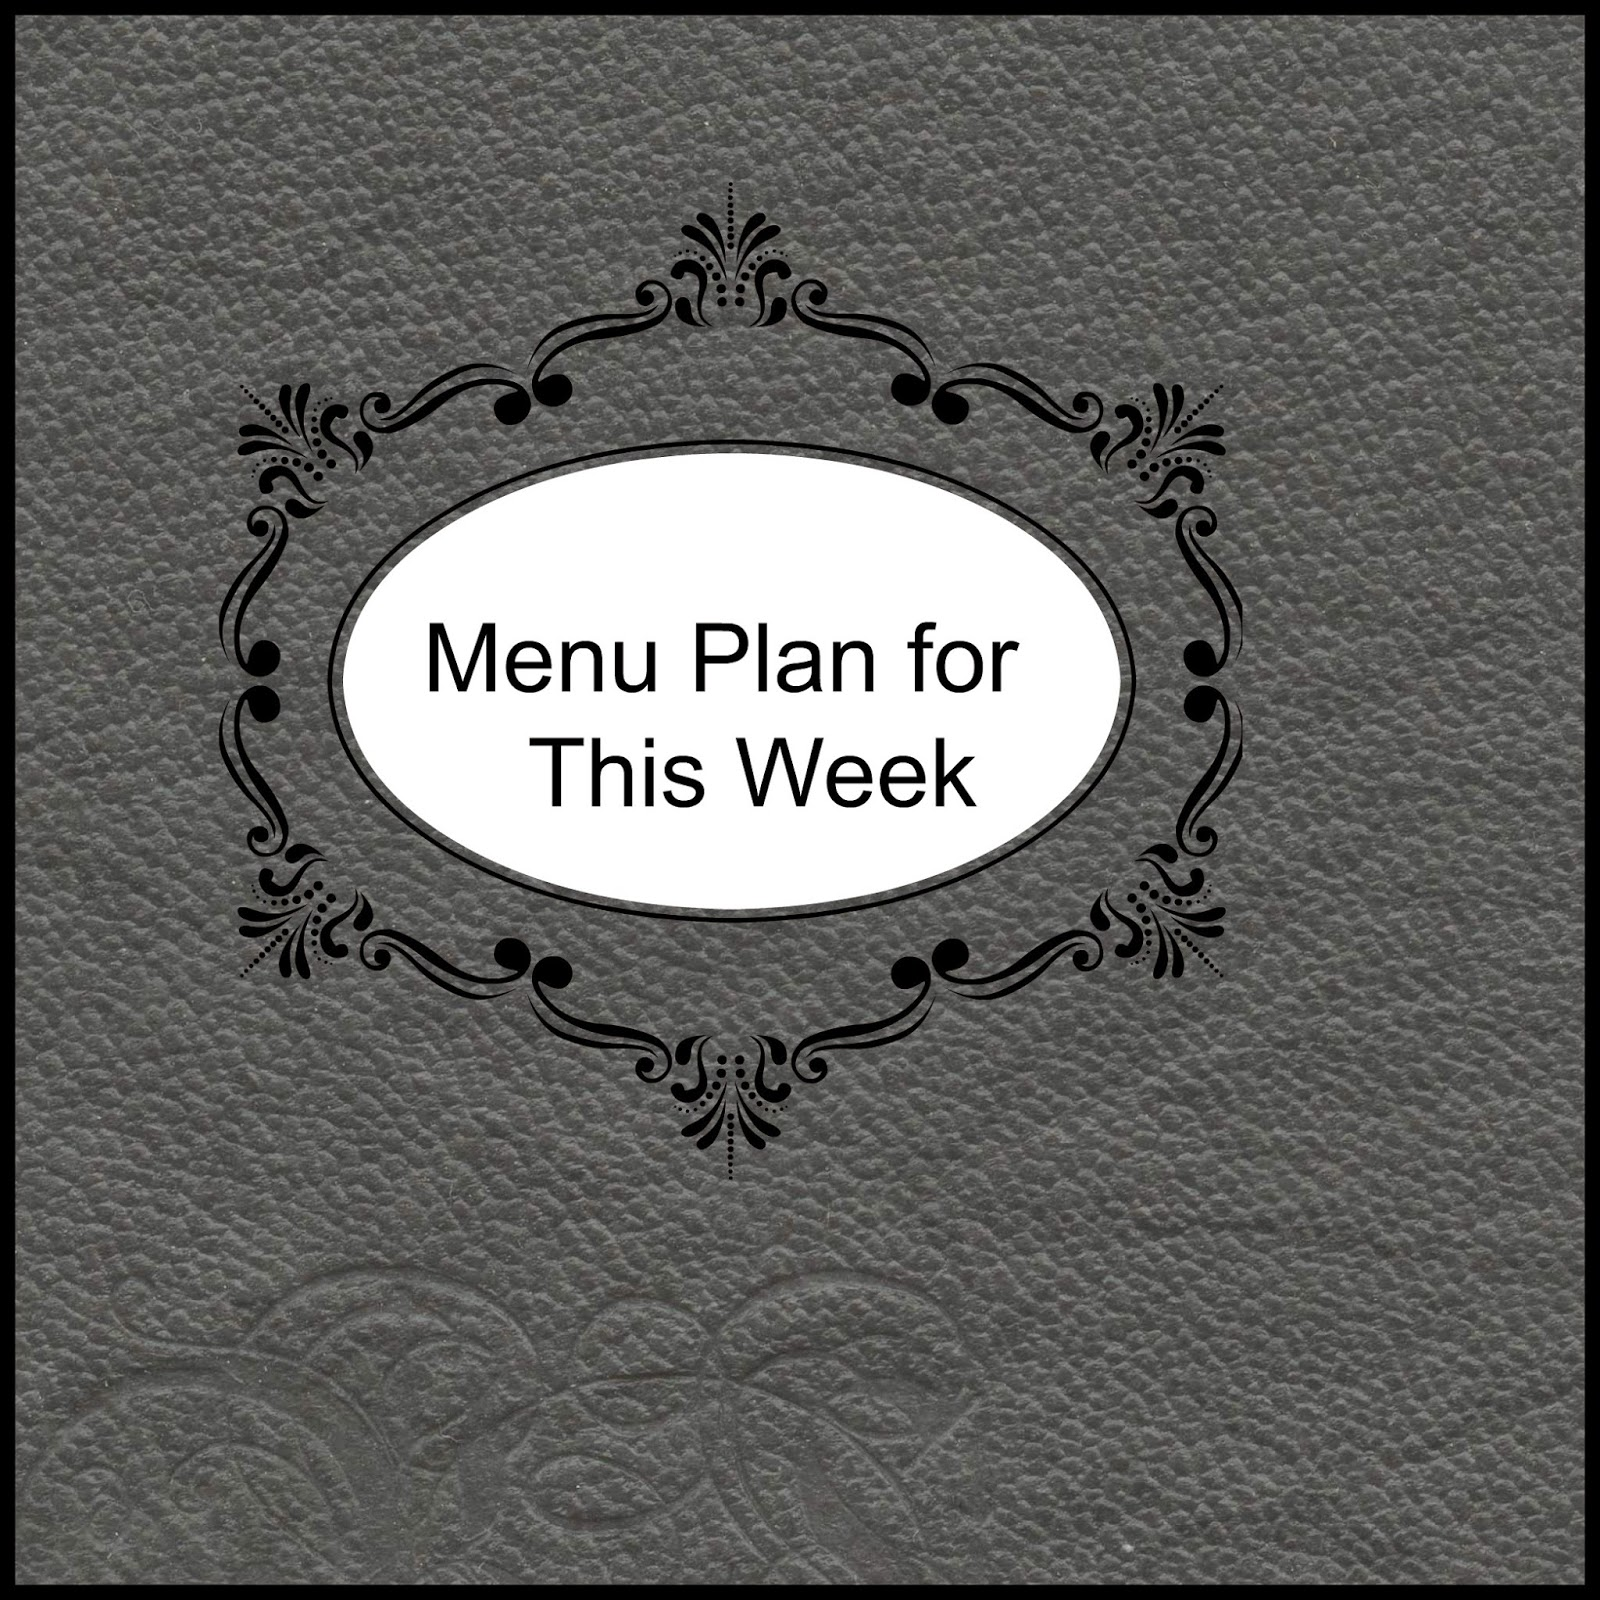 Menu plan picture